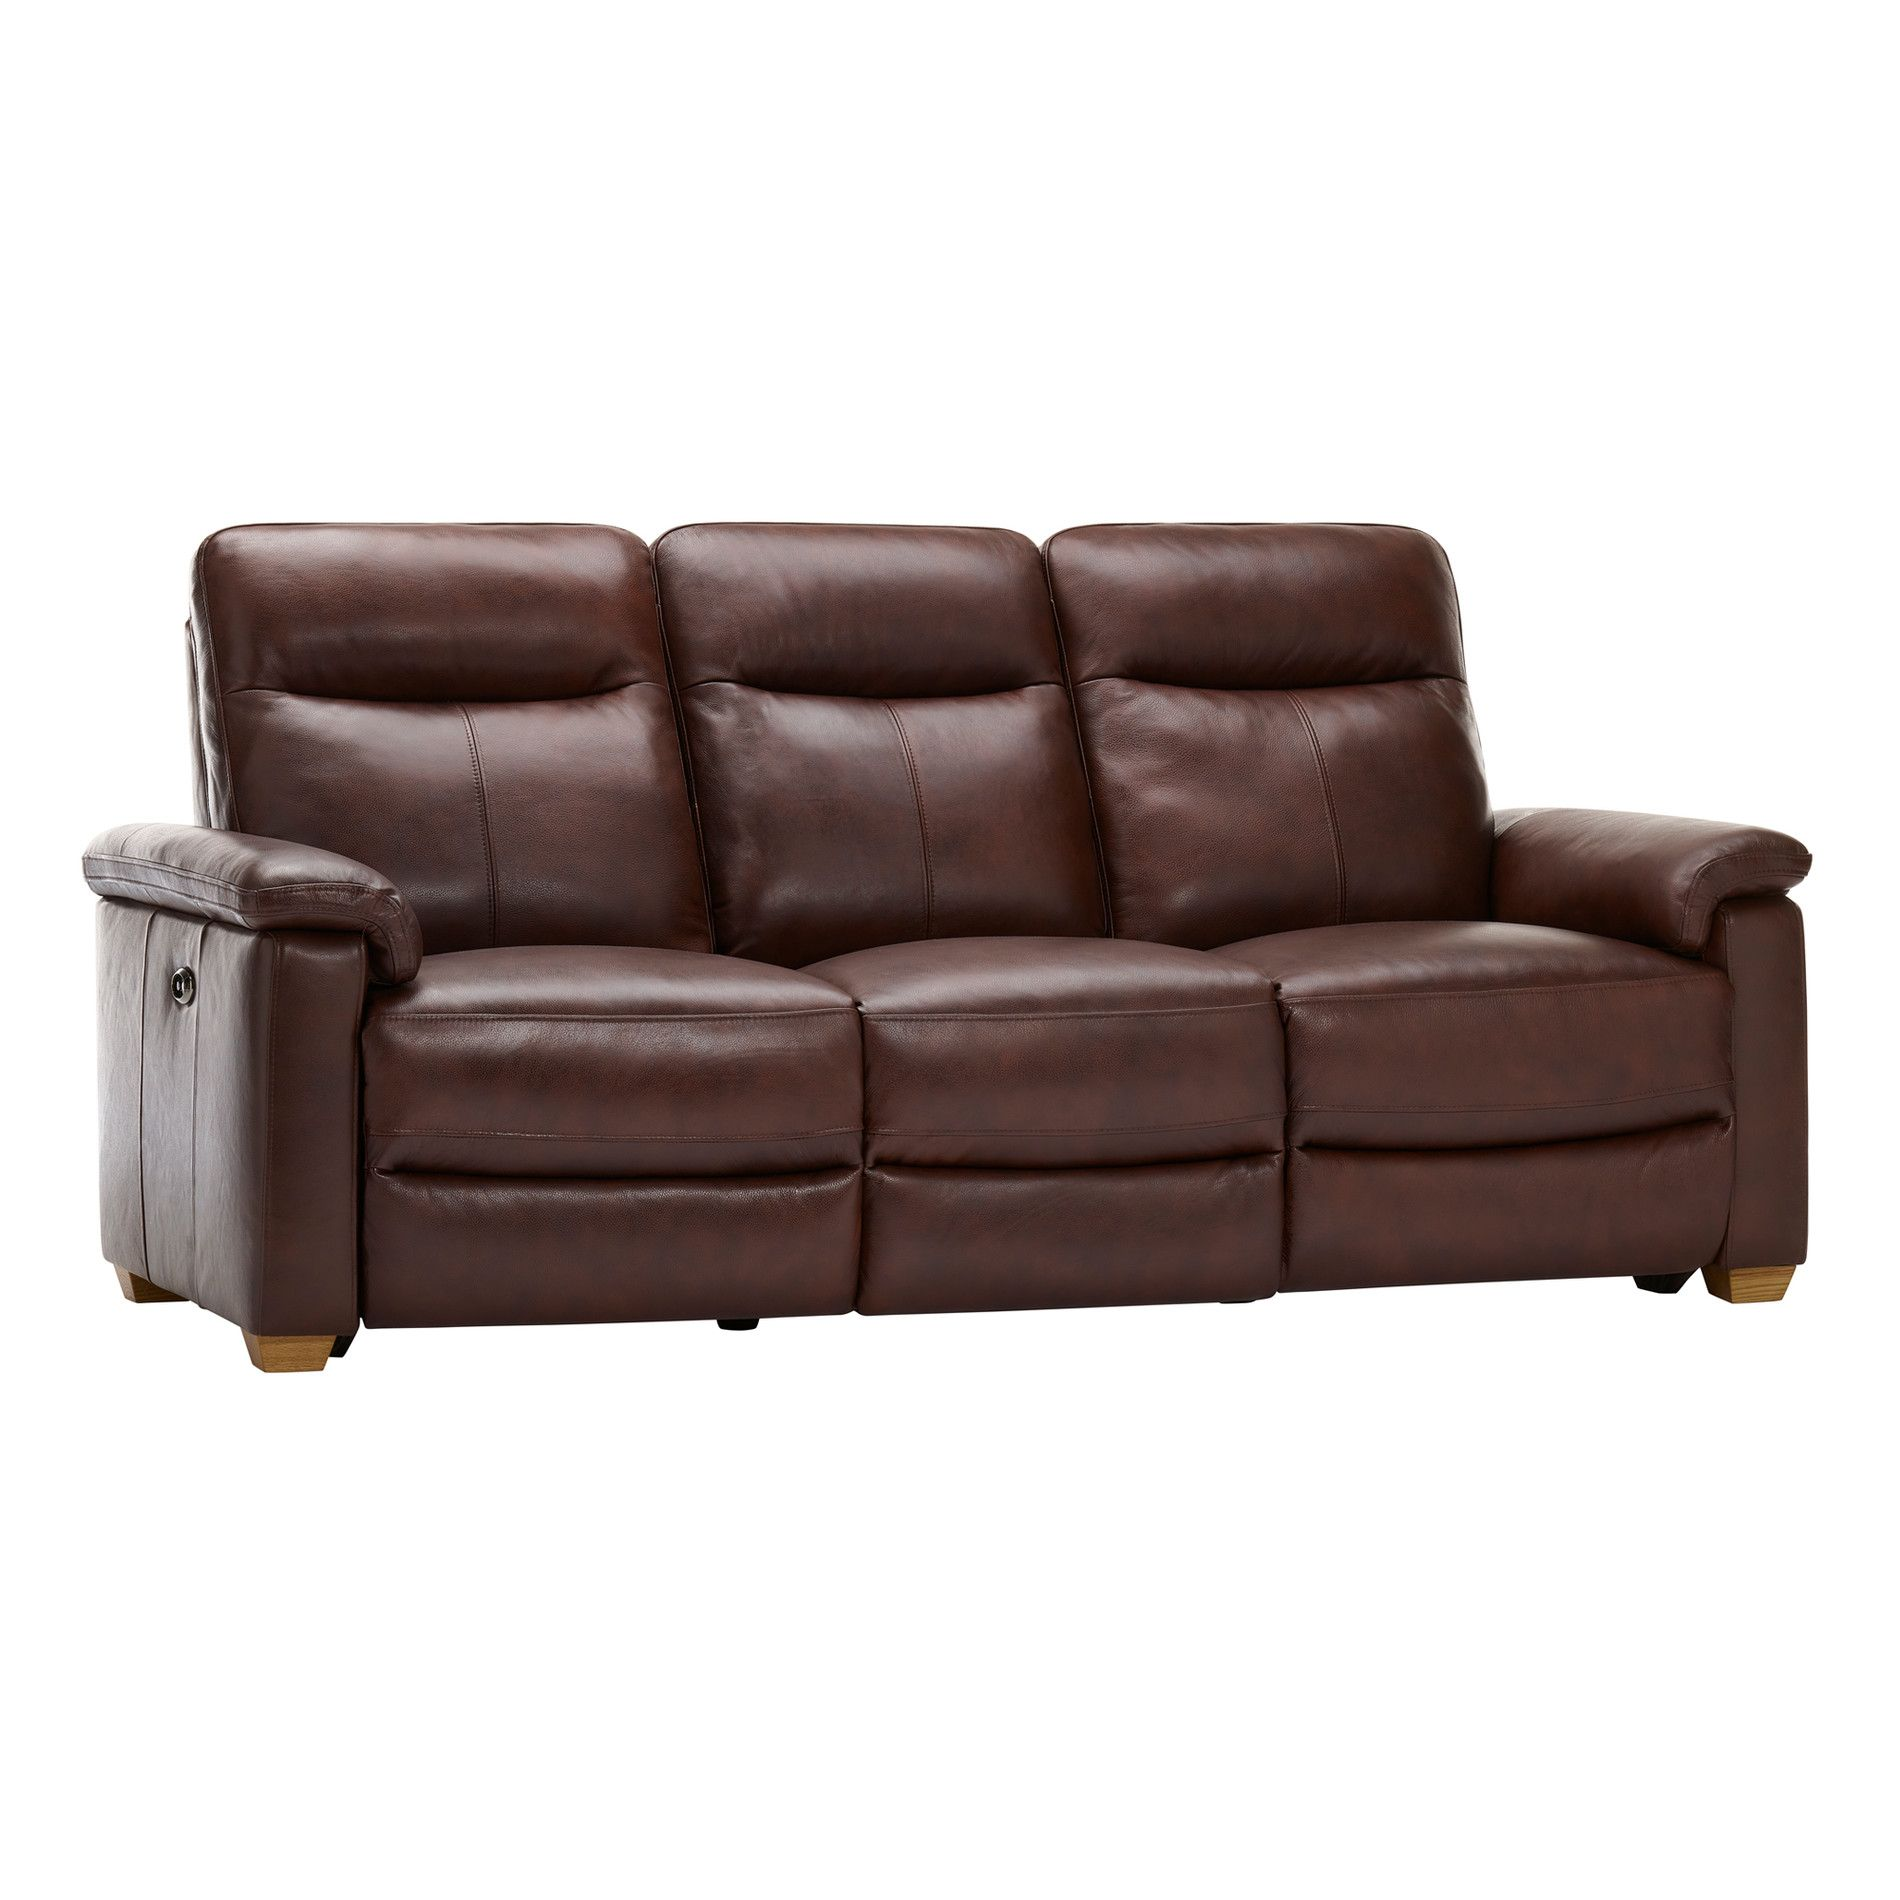 Malmo 3 Seater Sofa With 2 Electric Recliners 2 Tone Brown Leather Electric Recliners Brown Leather Recliner Recliner